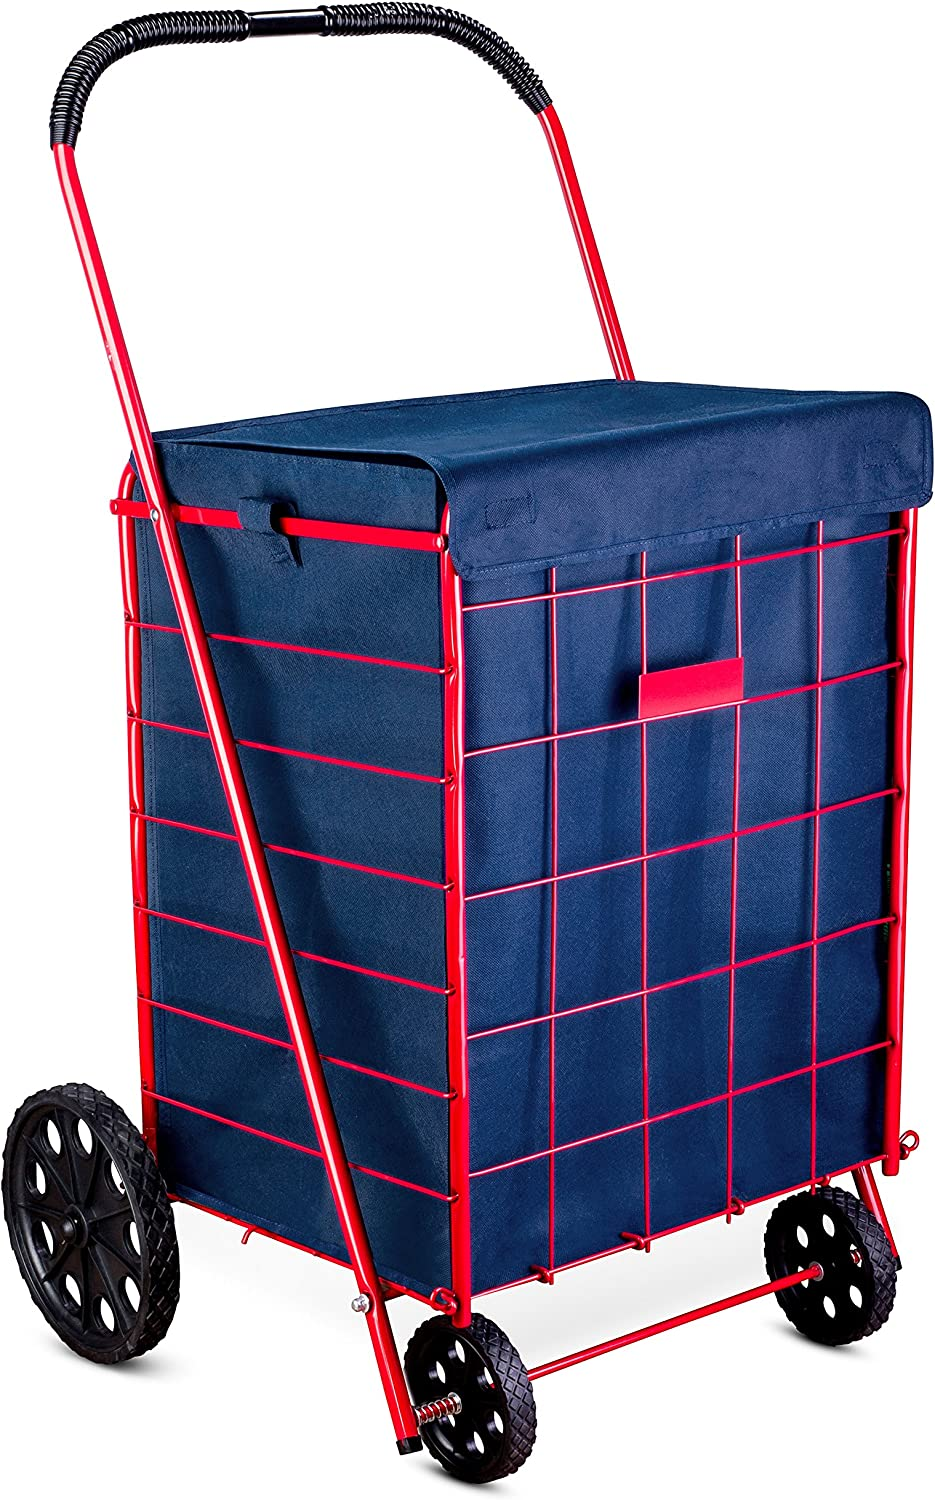 "Shopping Cart Liner - 18"" X 15"" X 24"" - Square Bottom Fits Snugly Into a Standard Shopping Cart. Cover and Adjustable Straps for Easy and Secure Attachment. Made from Waterproof Material, Navy Blue"